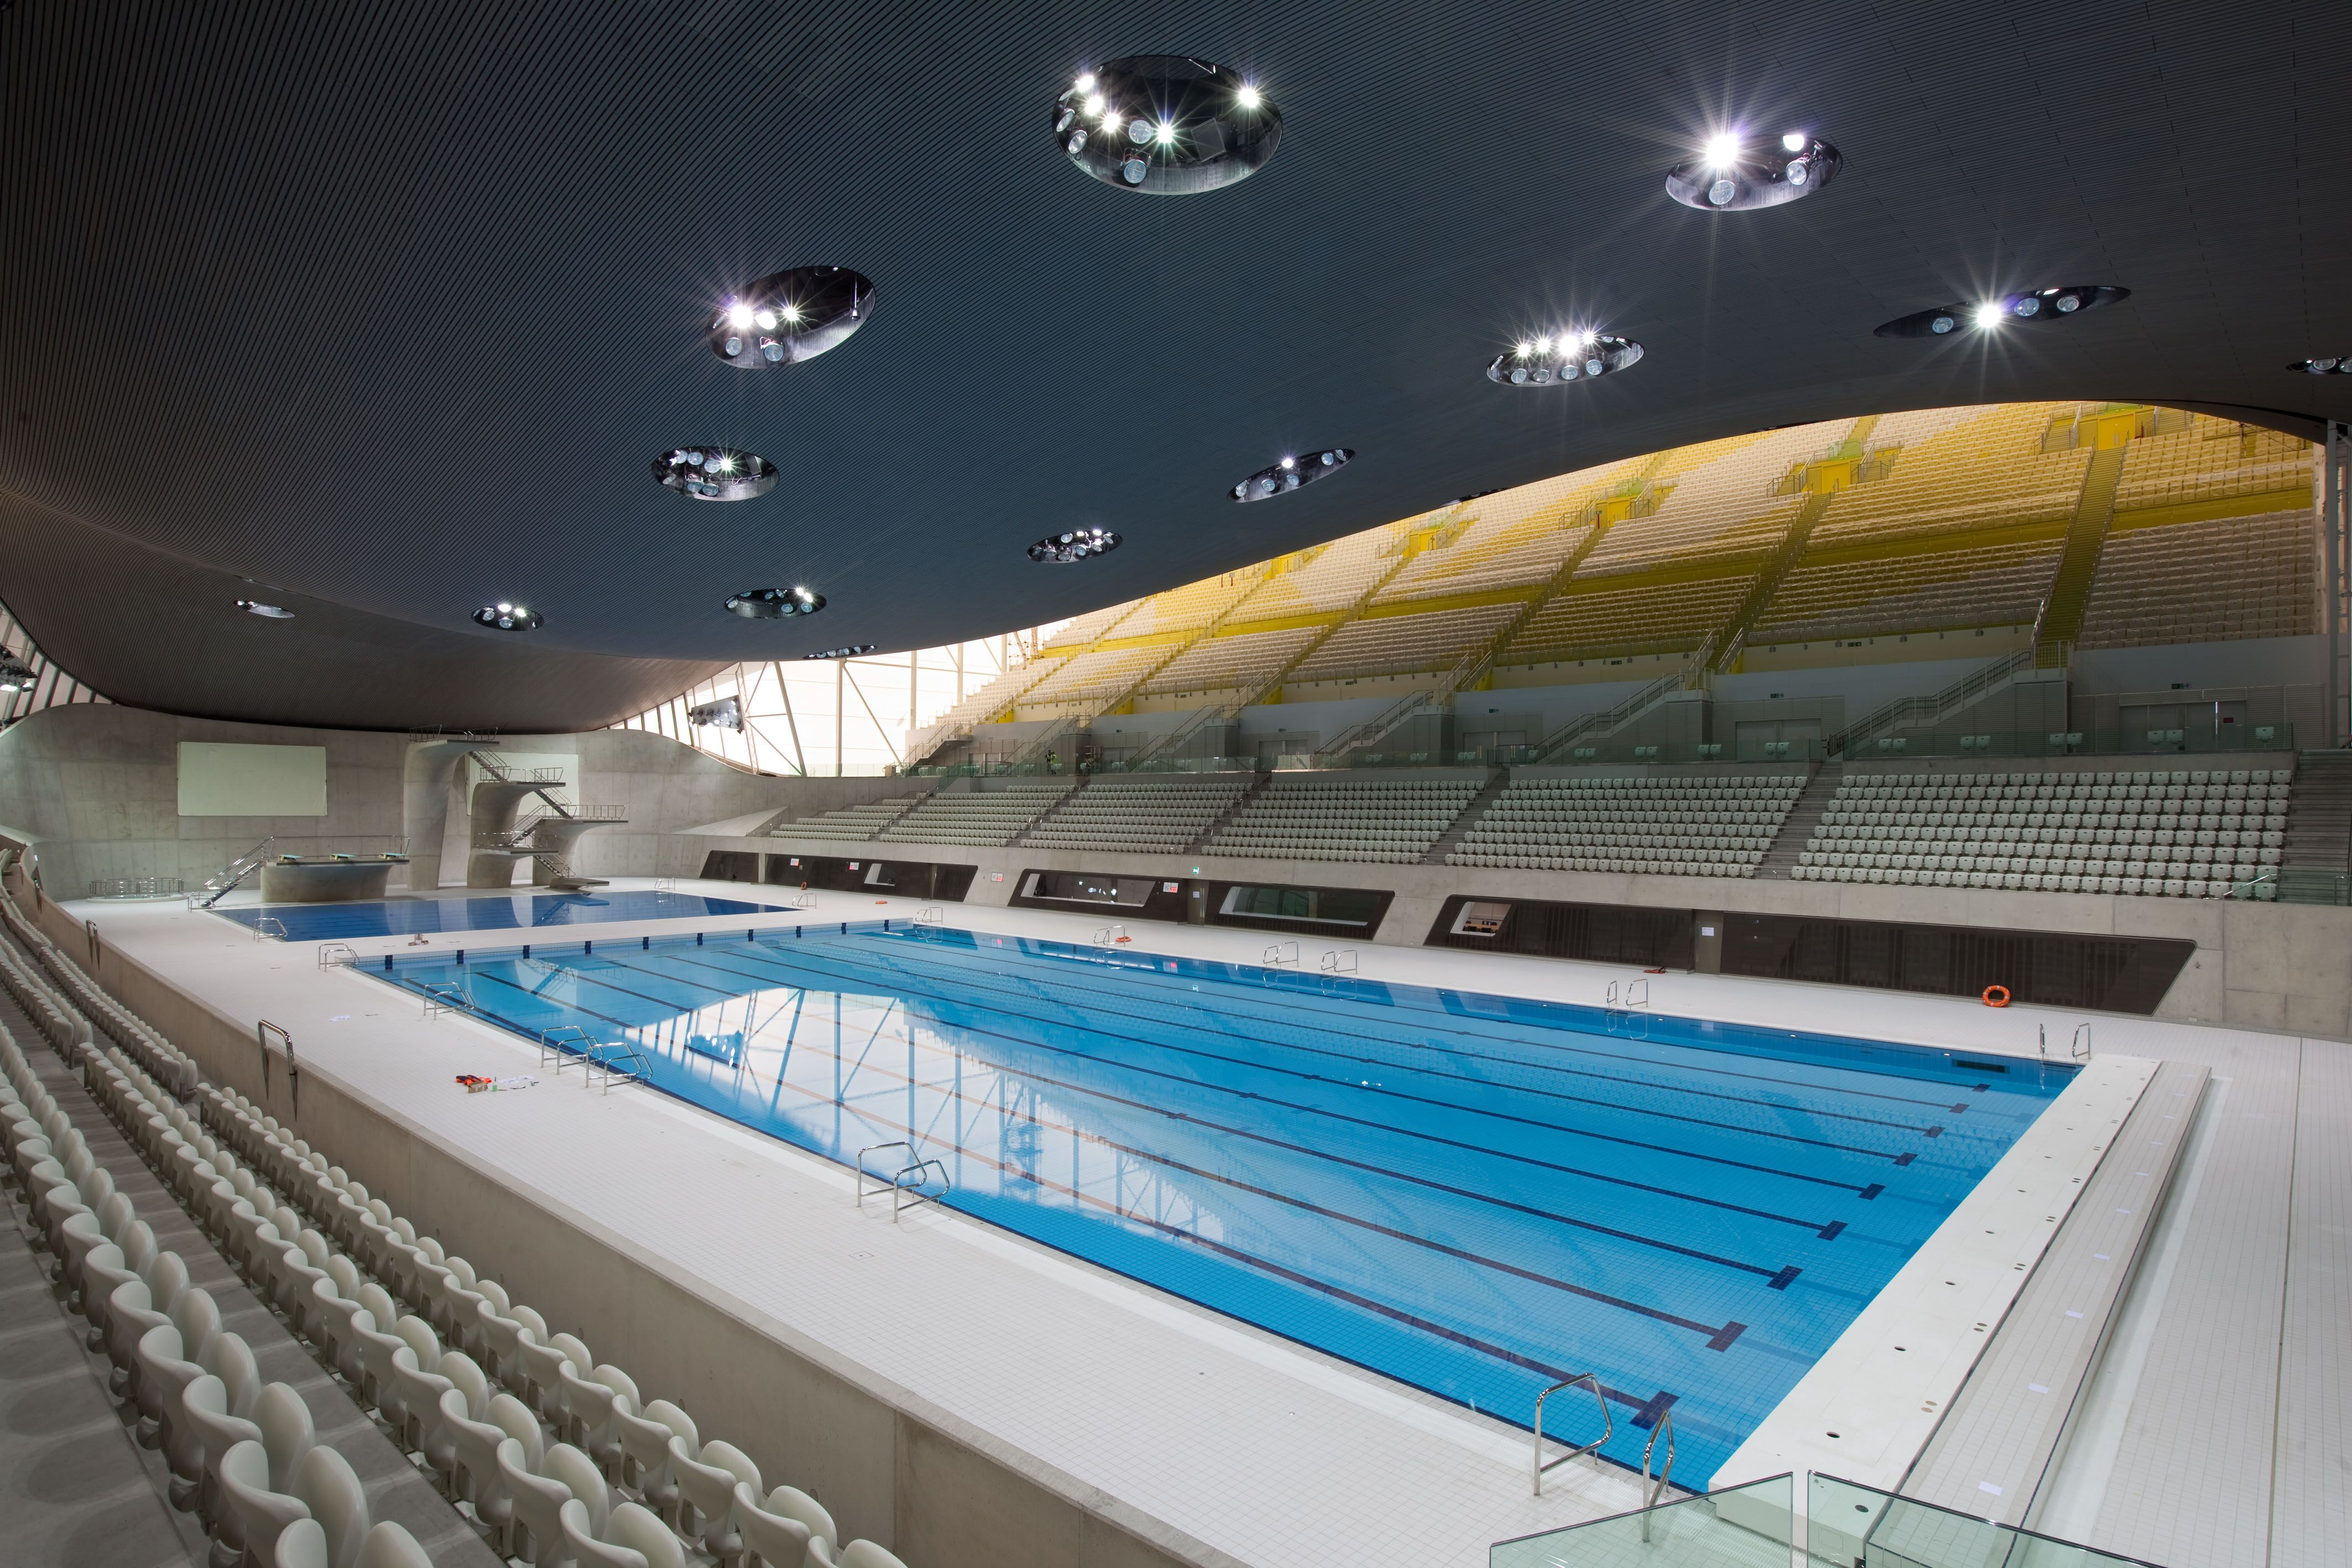 Attrayant A View Of The Main Swimming Pool In The Breathtaking Aquatics Centre, One  Of The Permanent Venues Specially Constructed For London Designed By ...